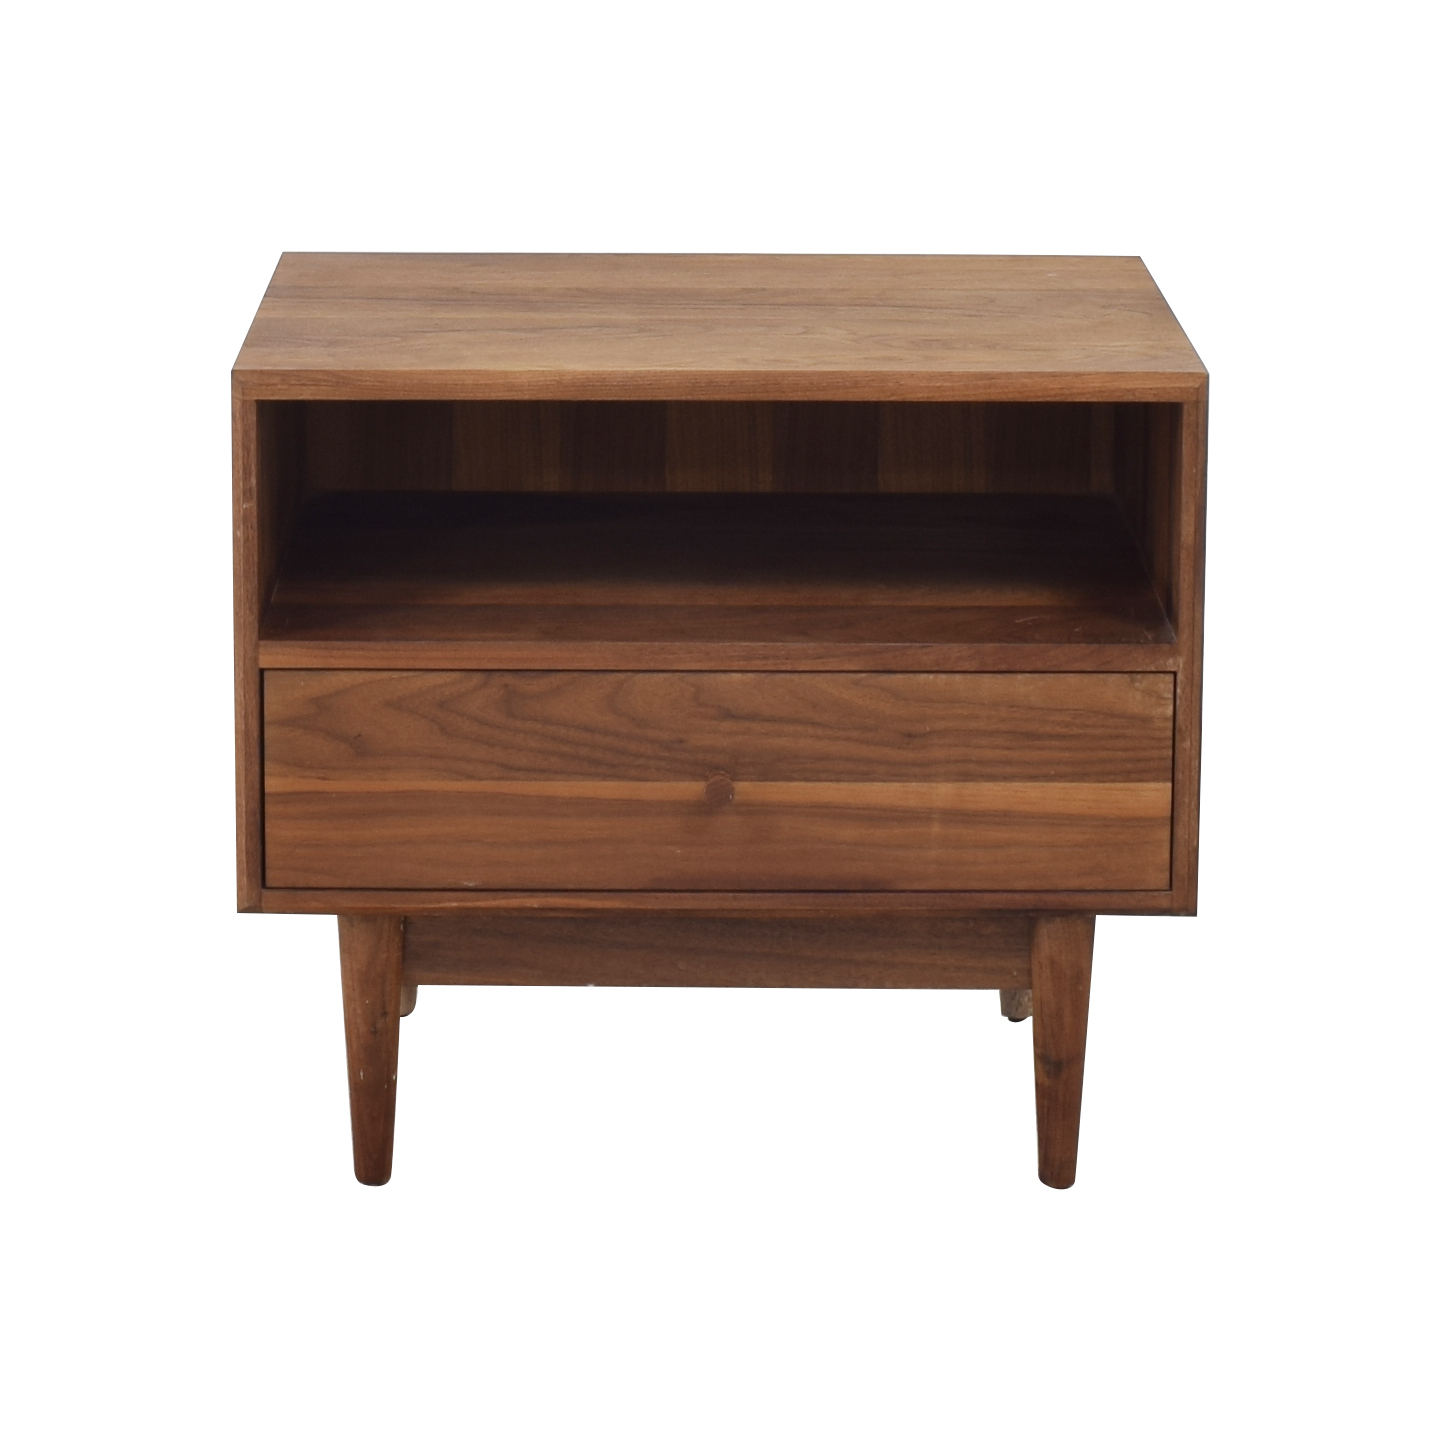 Room & Board Grove Nightstand sale